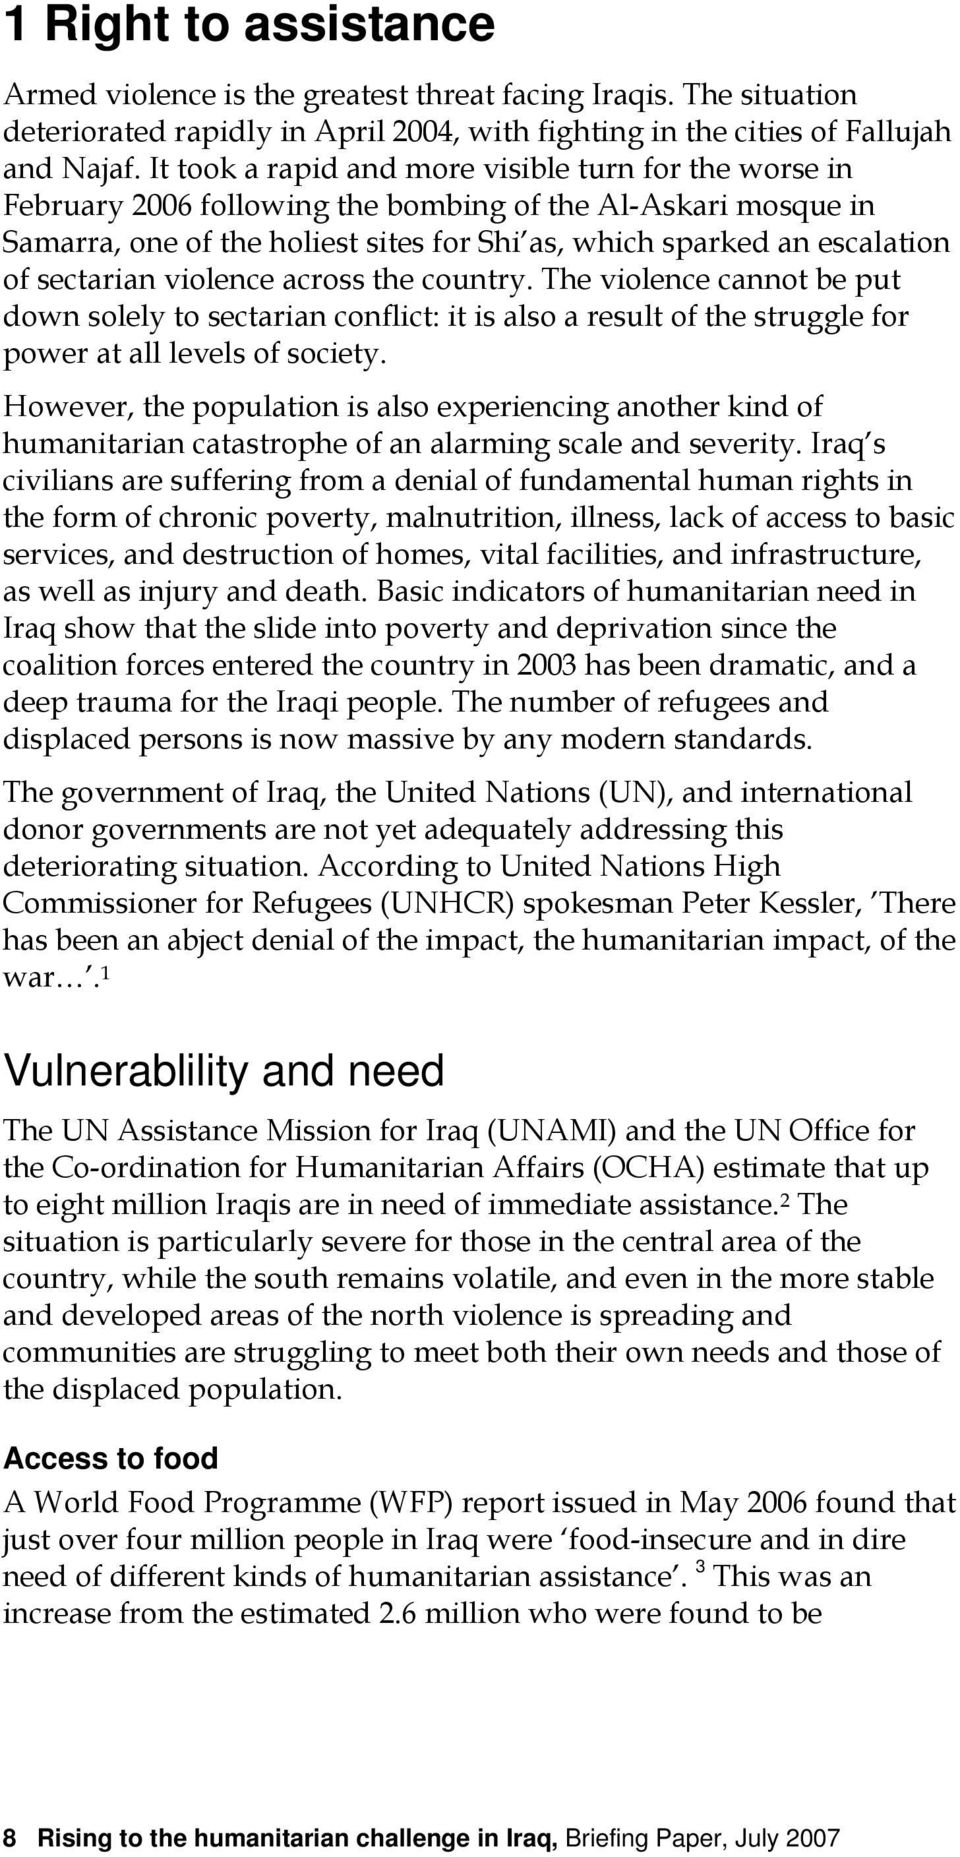 sectarian violence across the country. The violence cannot be put down solely to sectarian conflict: it is also a result of the struggle for power at all levels of society.